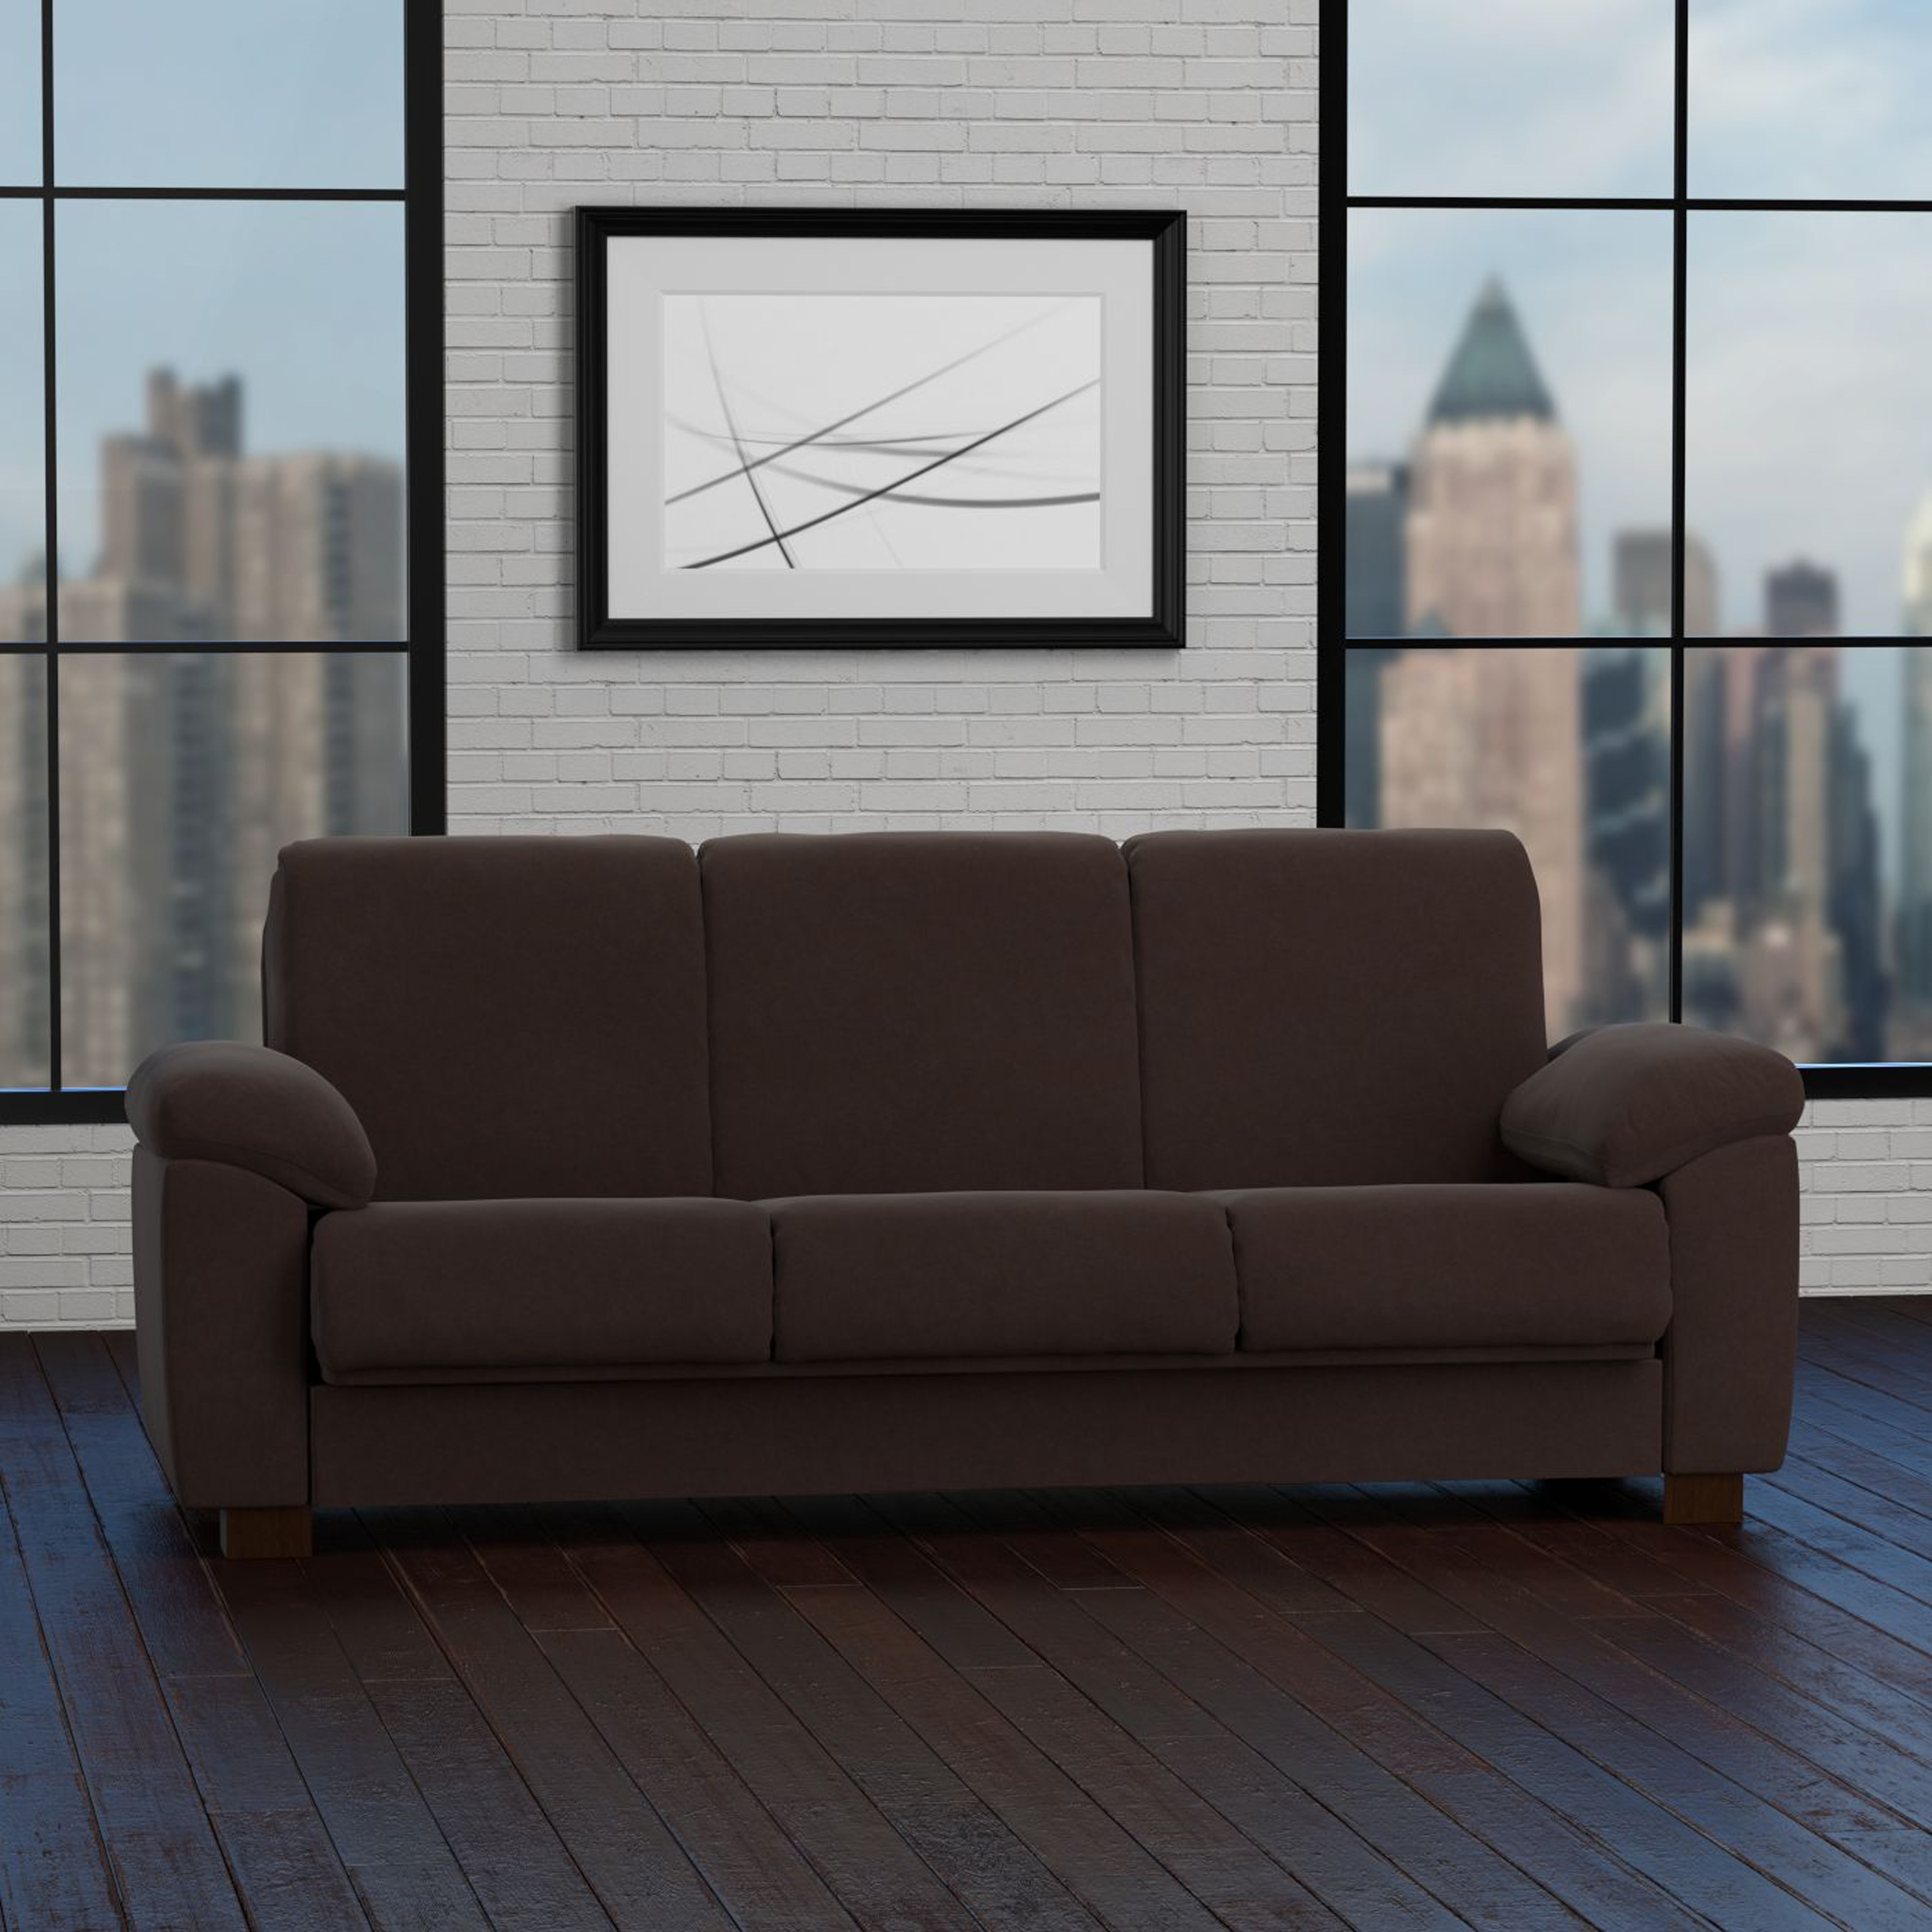 Handy Living Wrangler Convert A Couch Brown Pebbles Futon Sleeper Sofa On Free Shipping Today 11483070